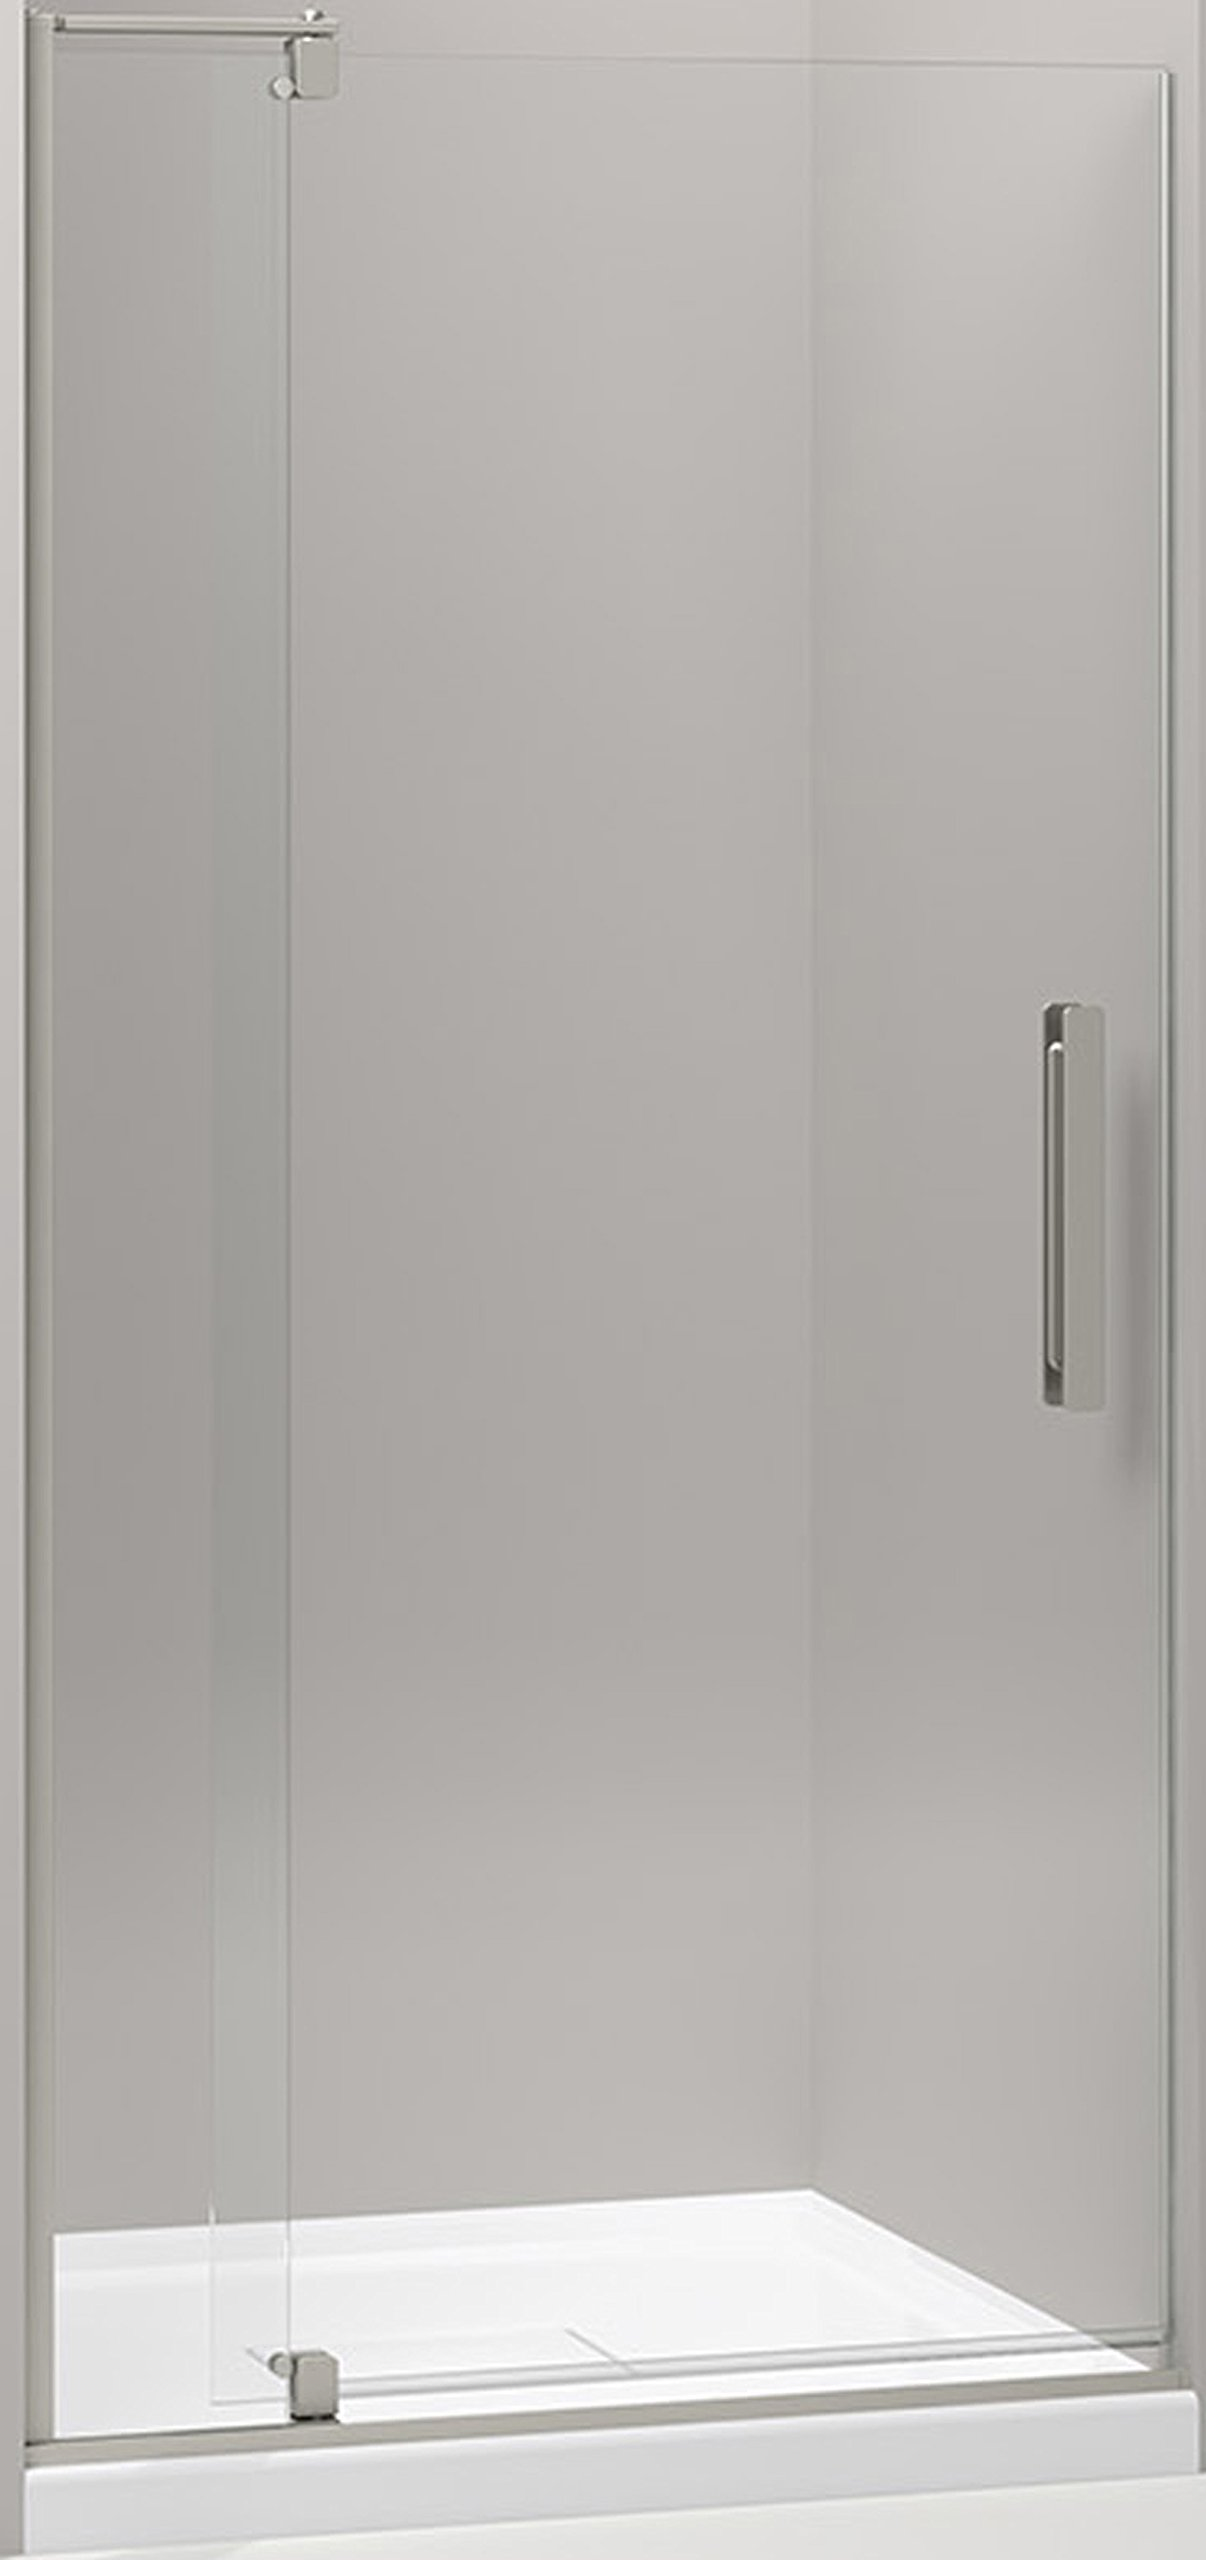 KOHLER K-707510-L-BNK Revel Pivot Shower Door with 1/4'' Thick Crystal Clear Glass, 70 x 31-1/8 x 36'', Anodized Brushed Nickel